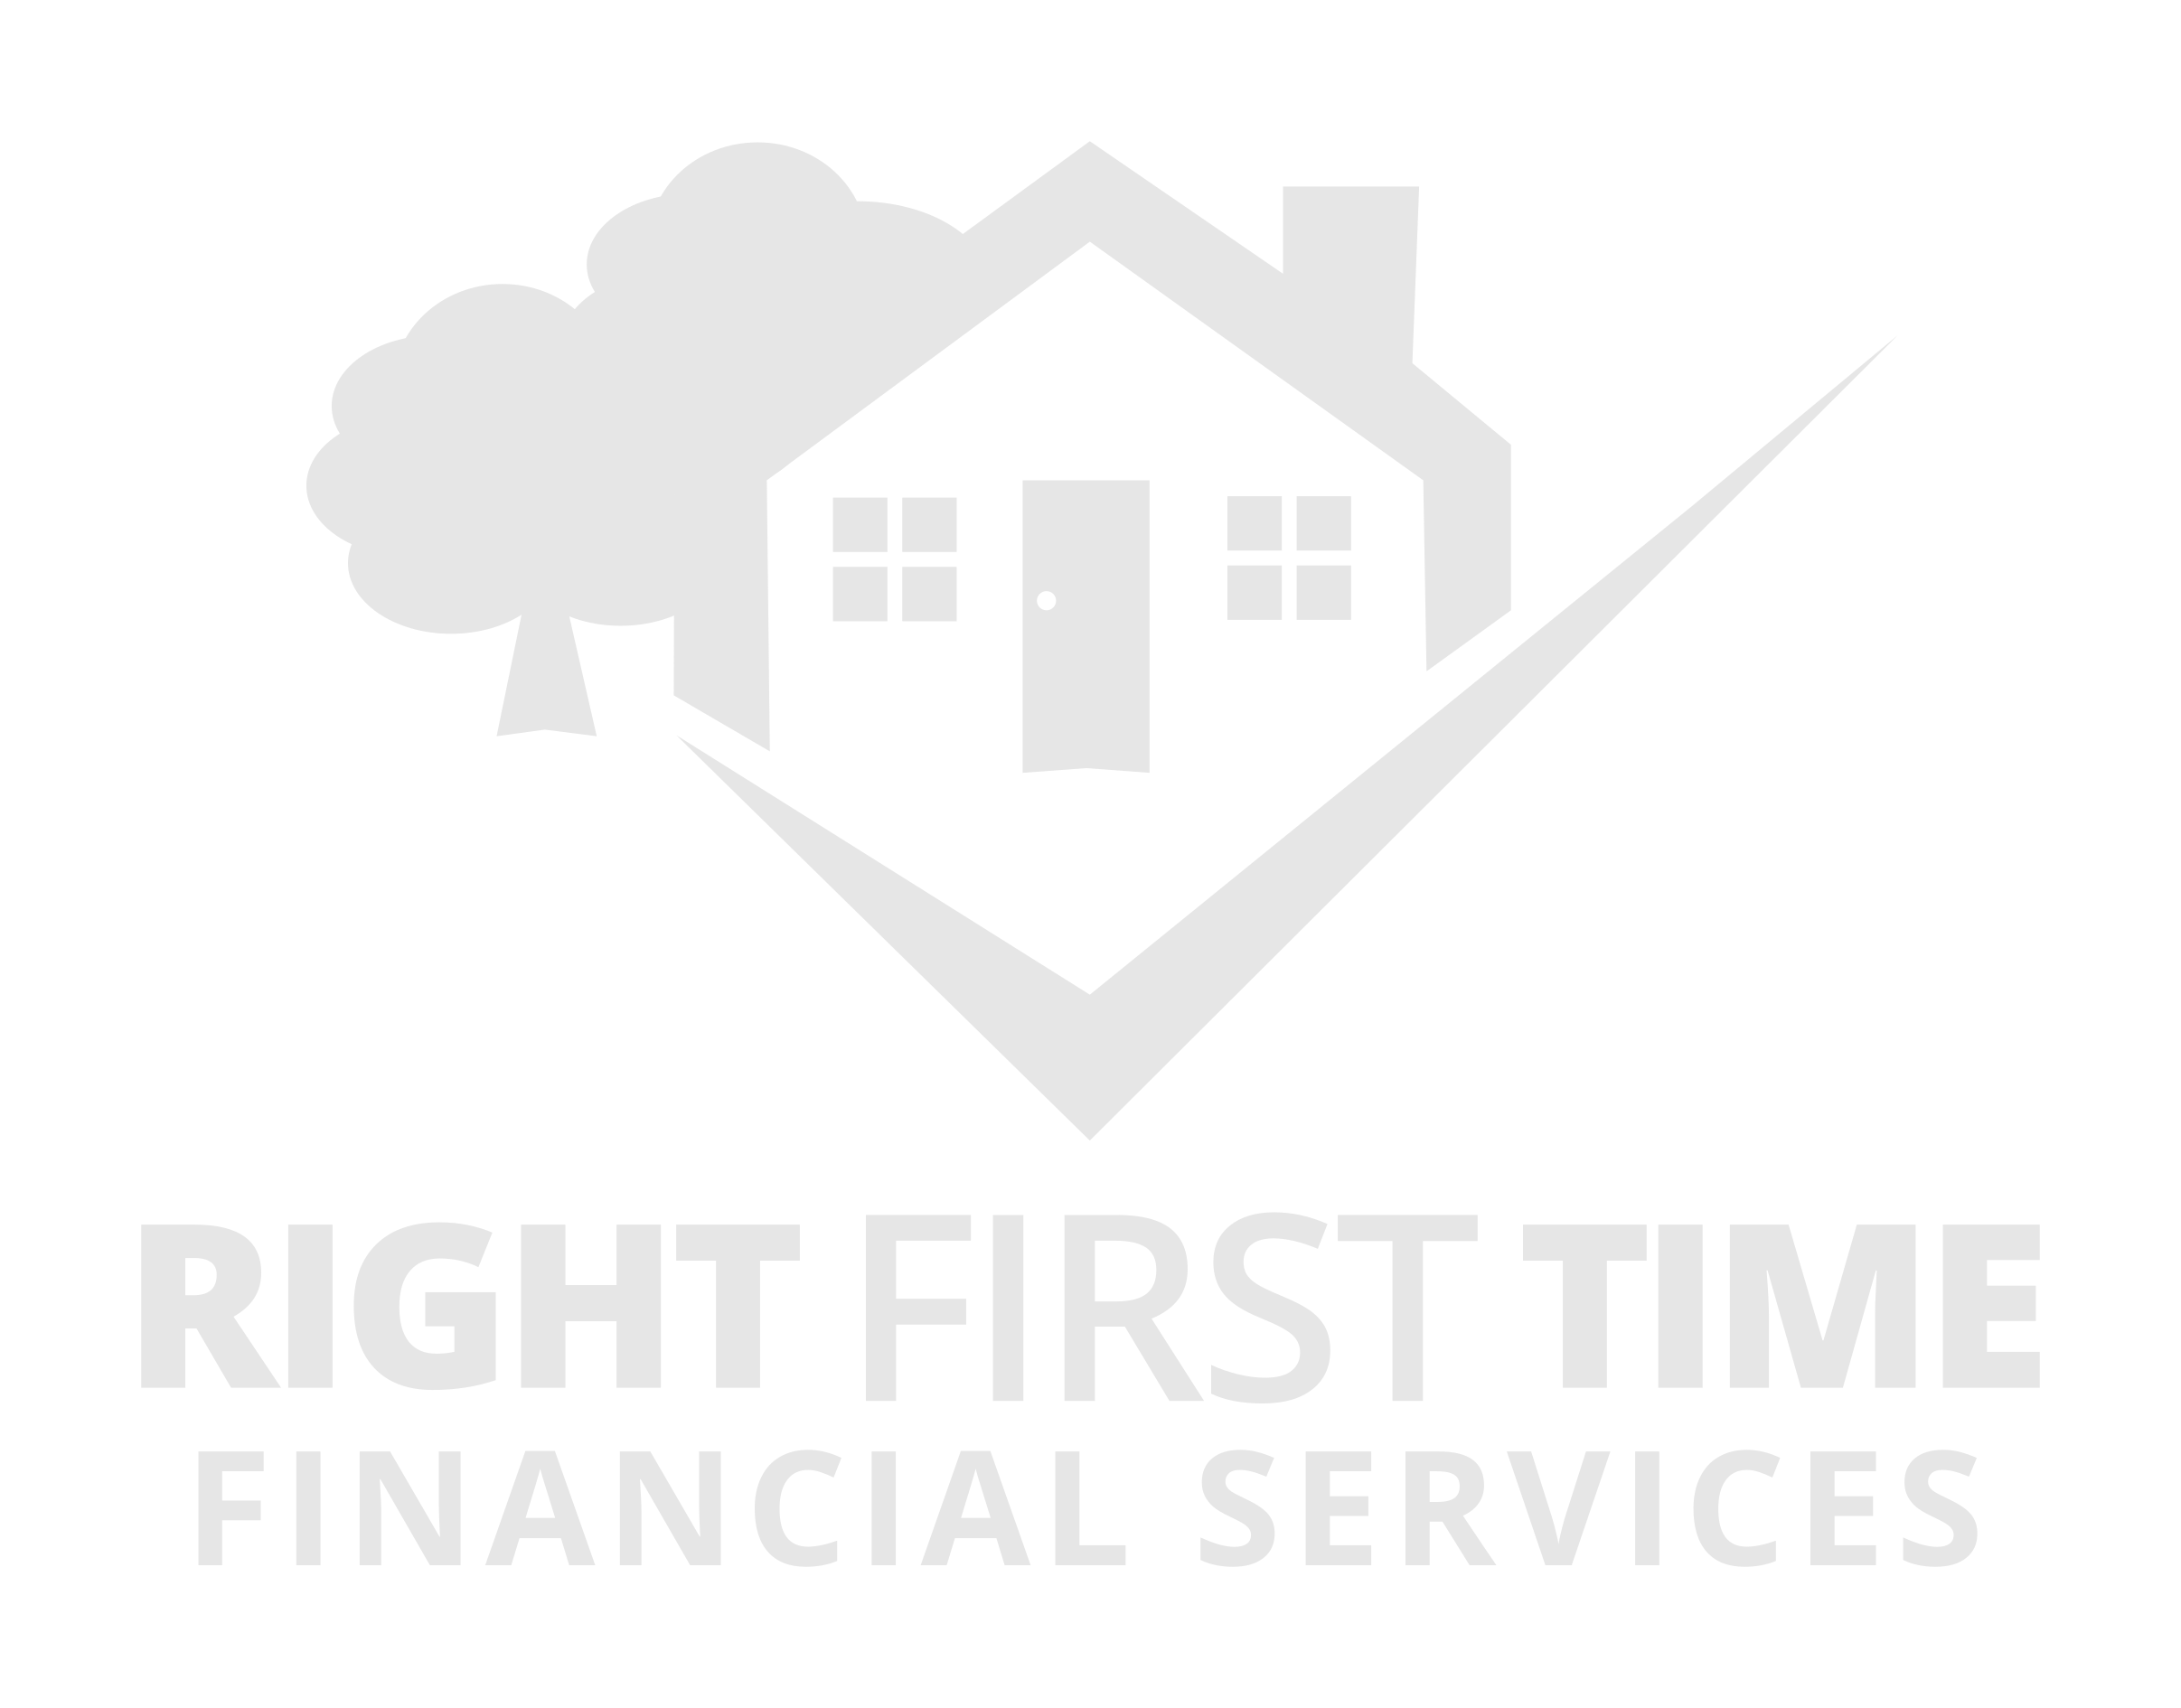 Right First Time Financial Services